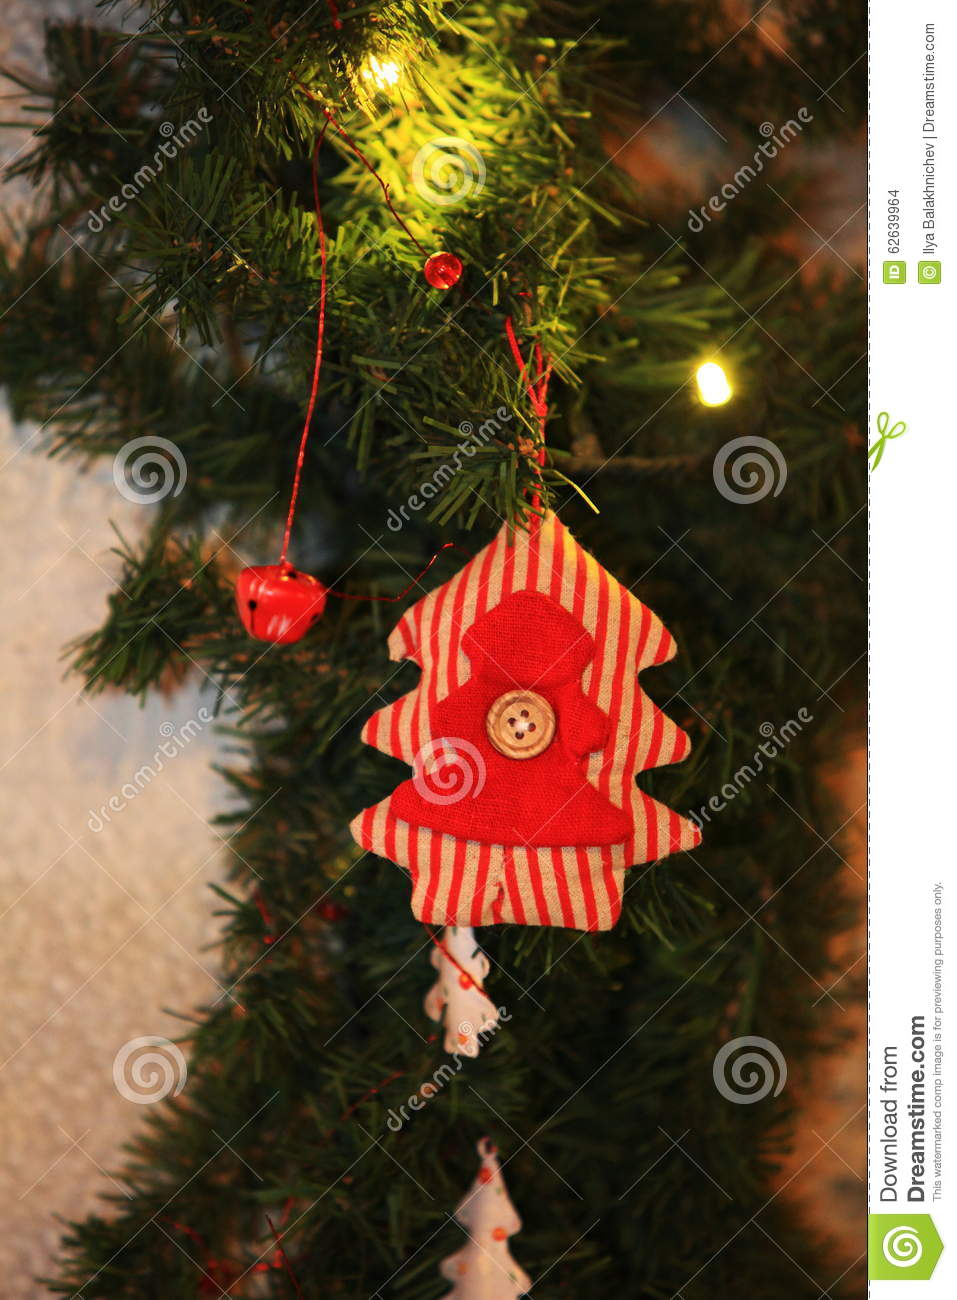 Christmas And New Year Decoration Decorative Toy Christmas